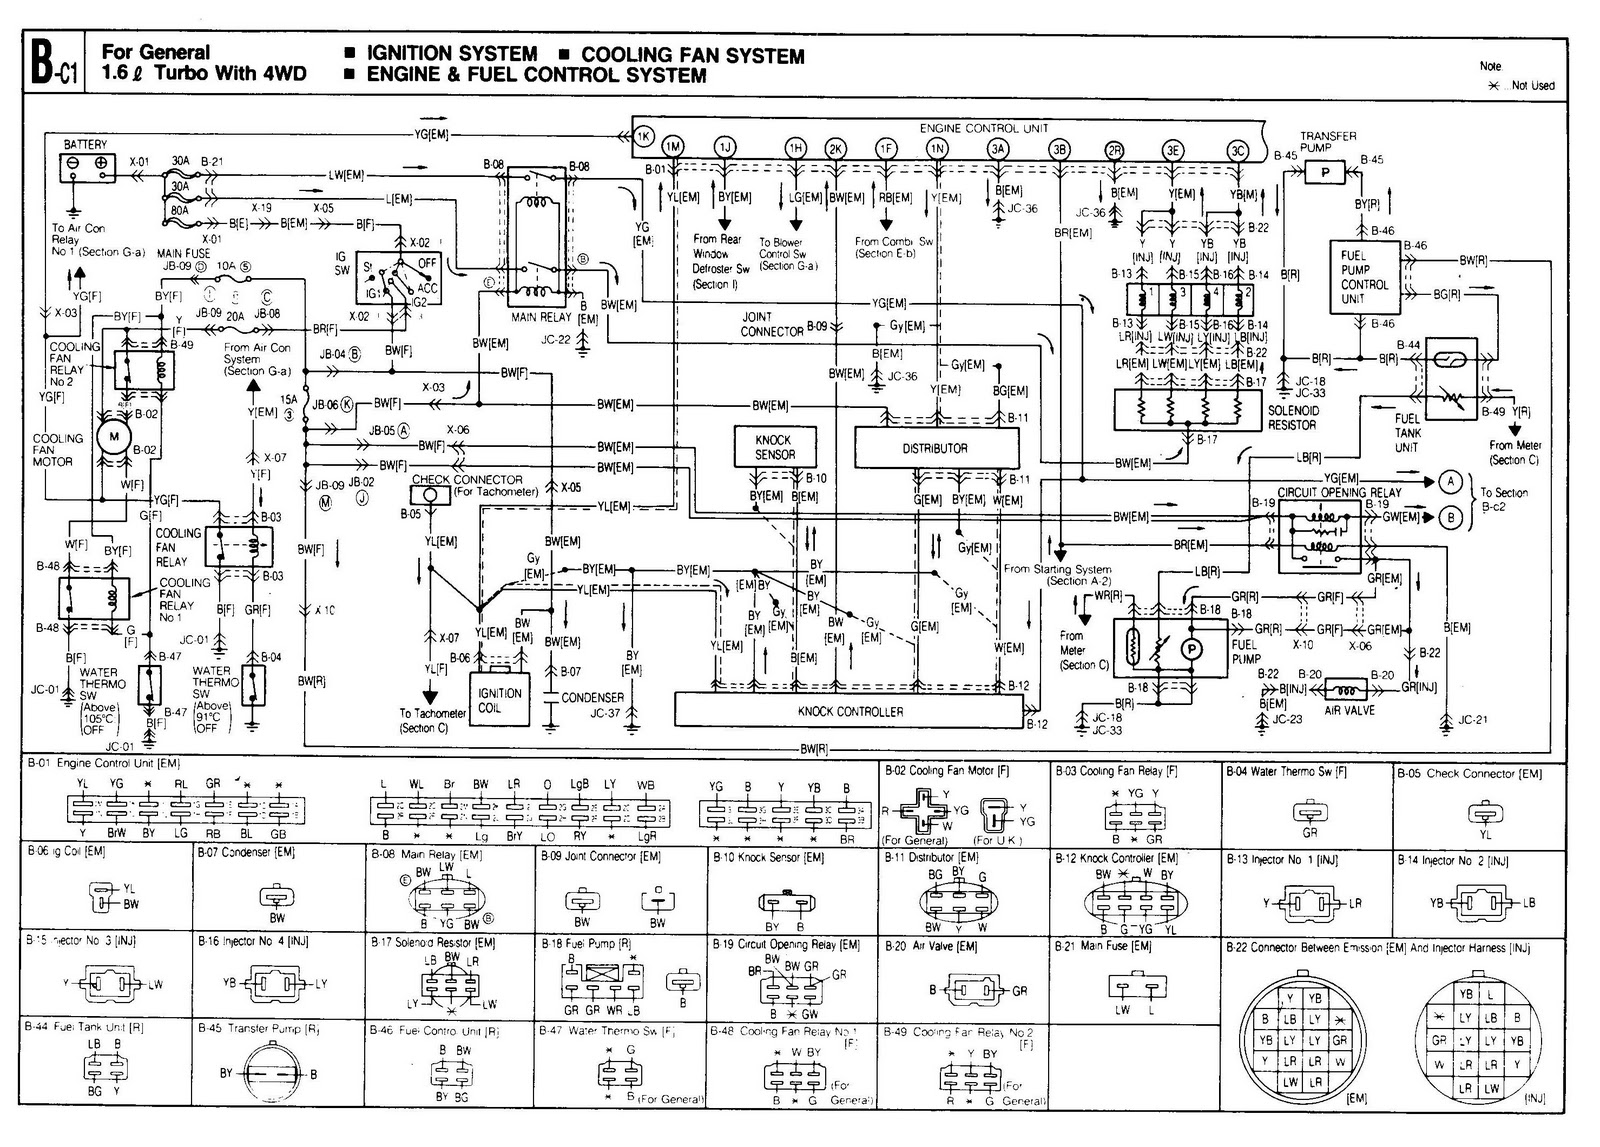 Mazda 323 wiring diagram stereo simple electronic circuits bmw wiring kit e stereo wiring harness e image wiring diagram bmw rh pradhic tripa co 1991 mazda 323 stereo wiring diagram 2001 mazda 323 stereo wiring asfbconference2016 Image collections